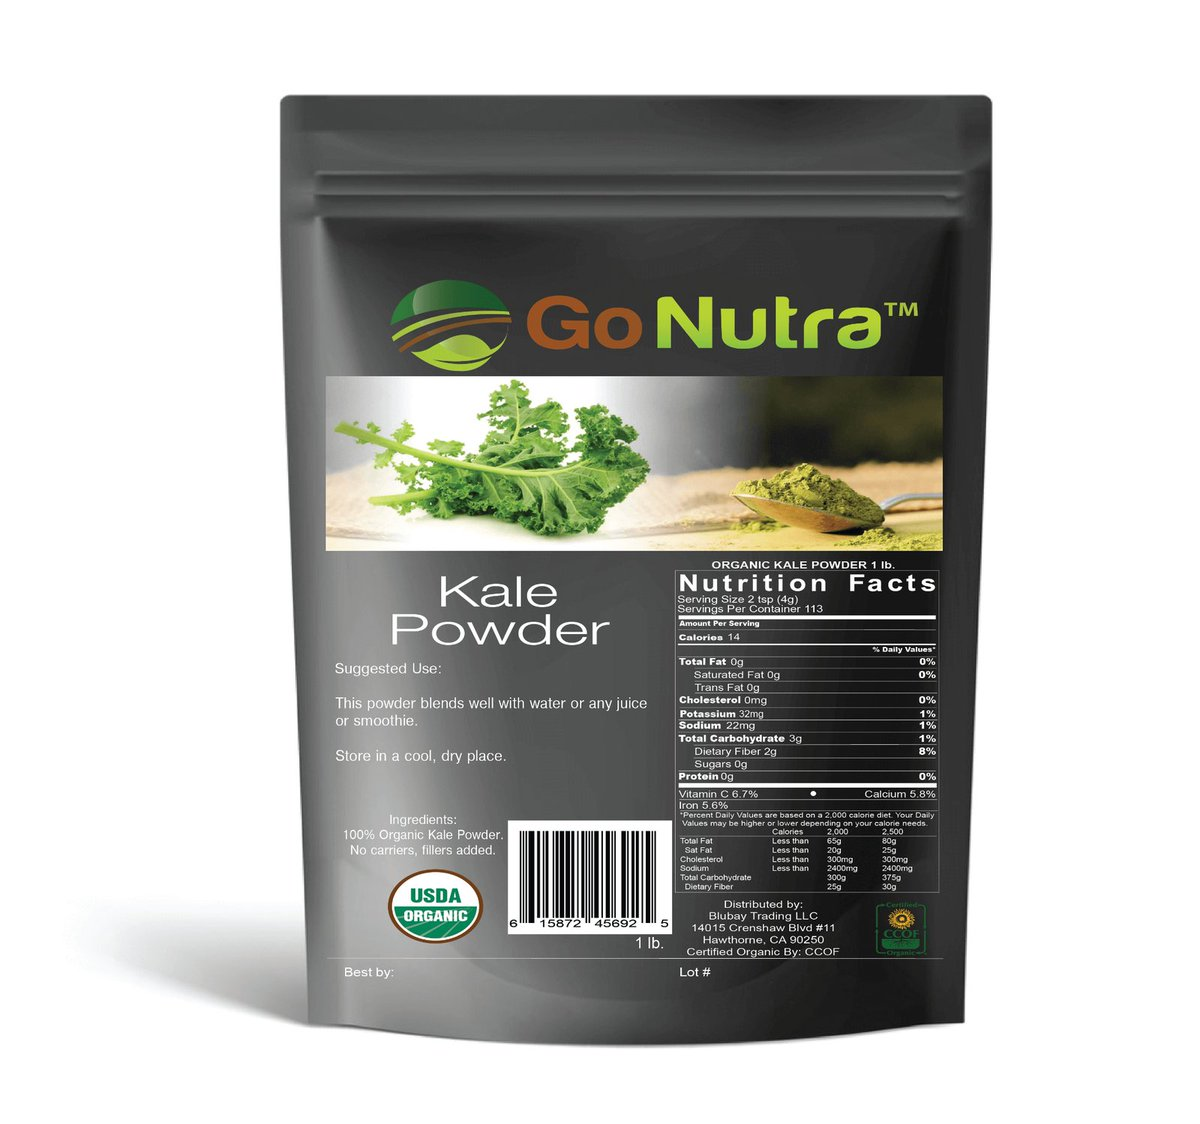 Kale is a nutrient dense food, with many of its components helping to improve the strength of your skin and nails. Try our Kale powder! https://t.co/G1M3SidGmP #healthy #beachbody #sweating #followforfollow #crossfit #fit #superfood #fitfiance https://t.co/k63mXgkKW4